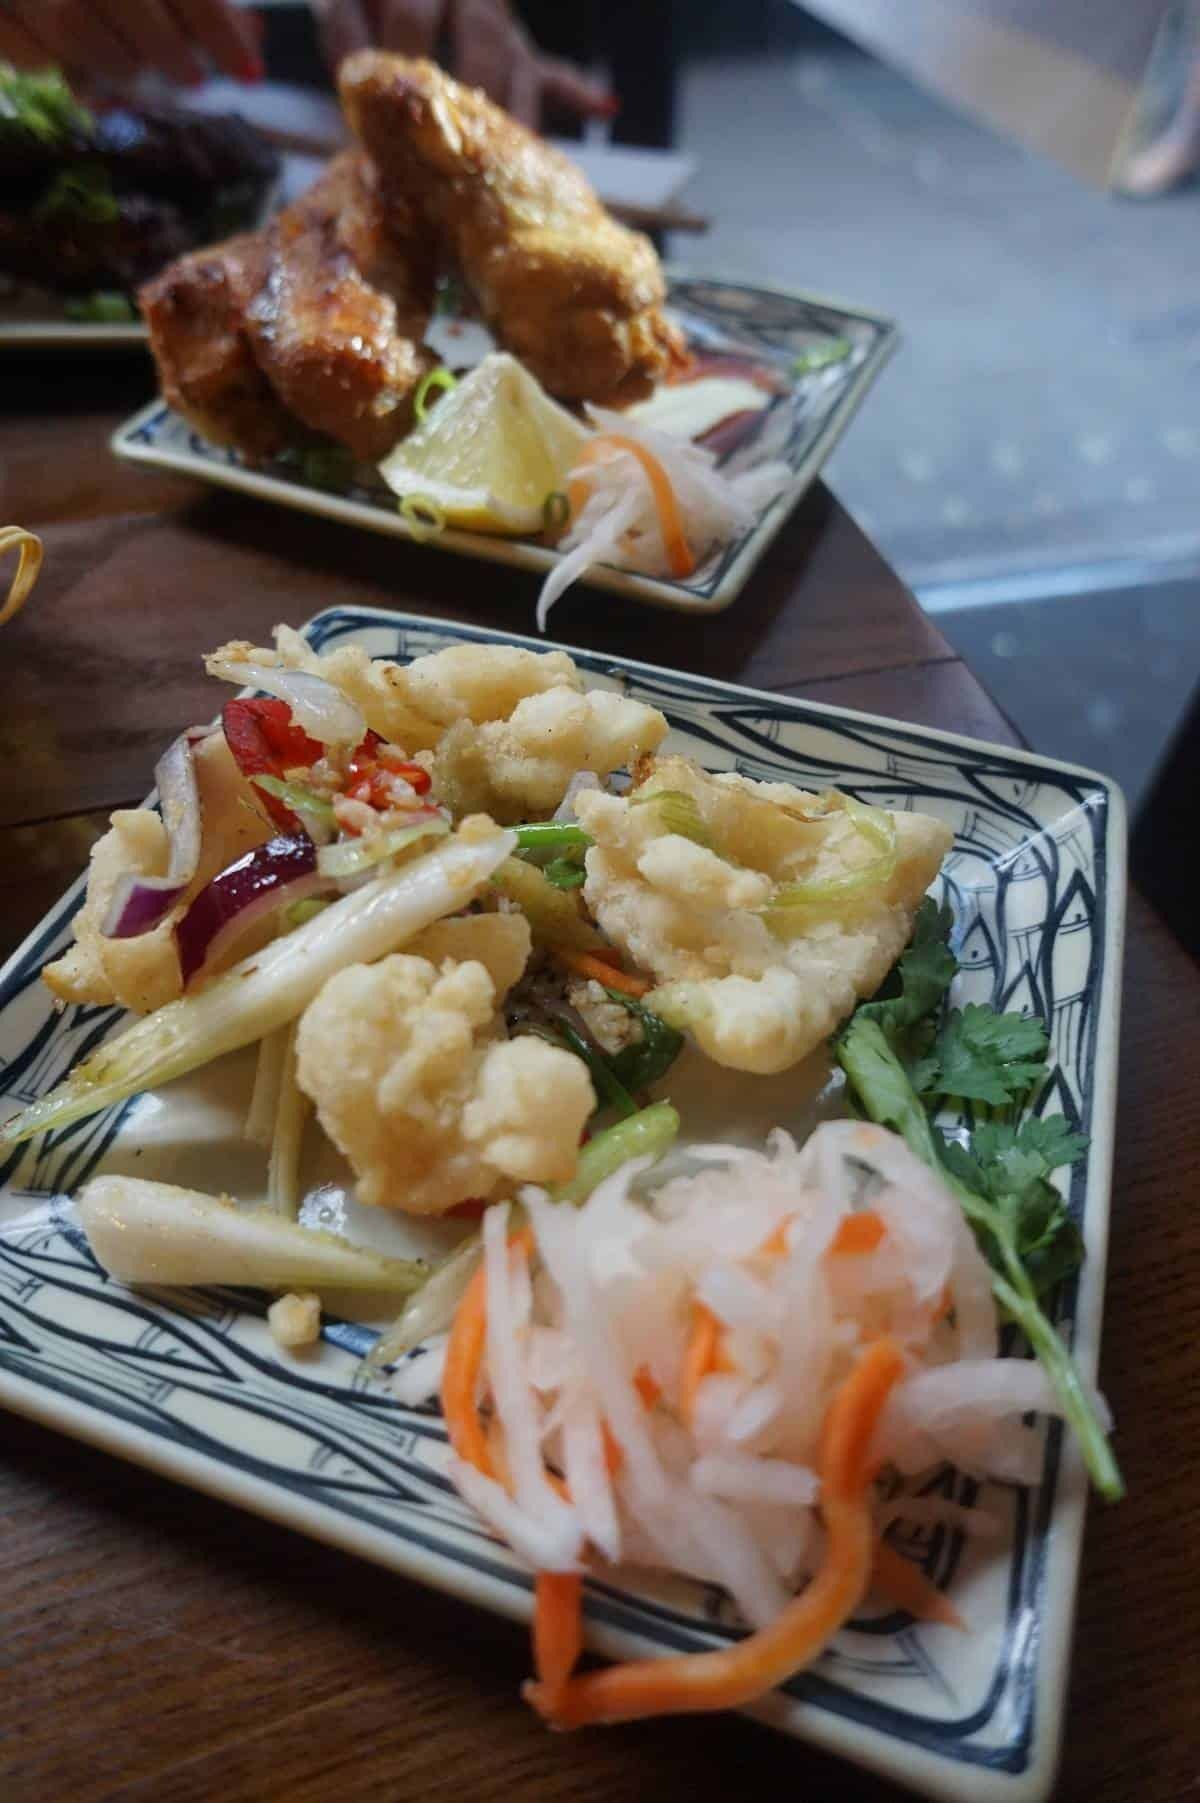 Chili salt and pepper squid from Pho and Bun